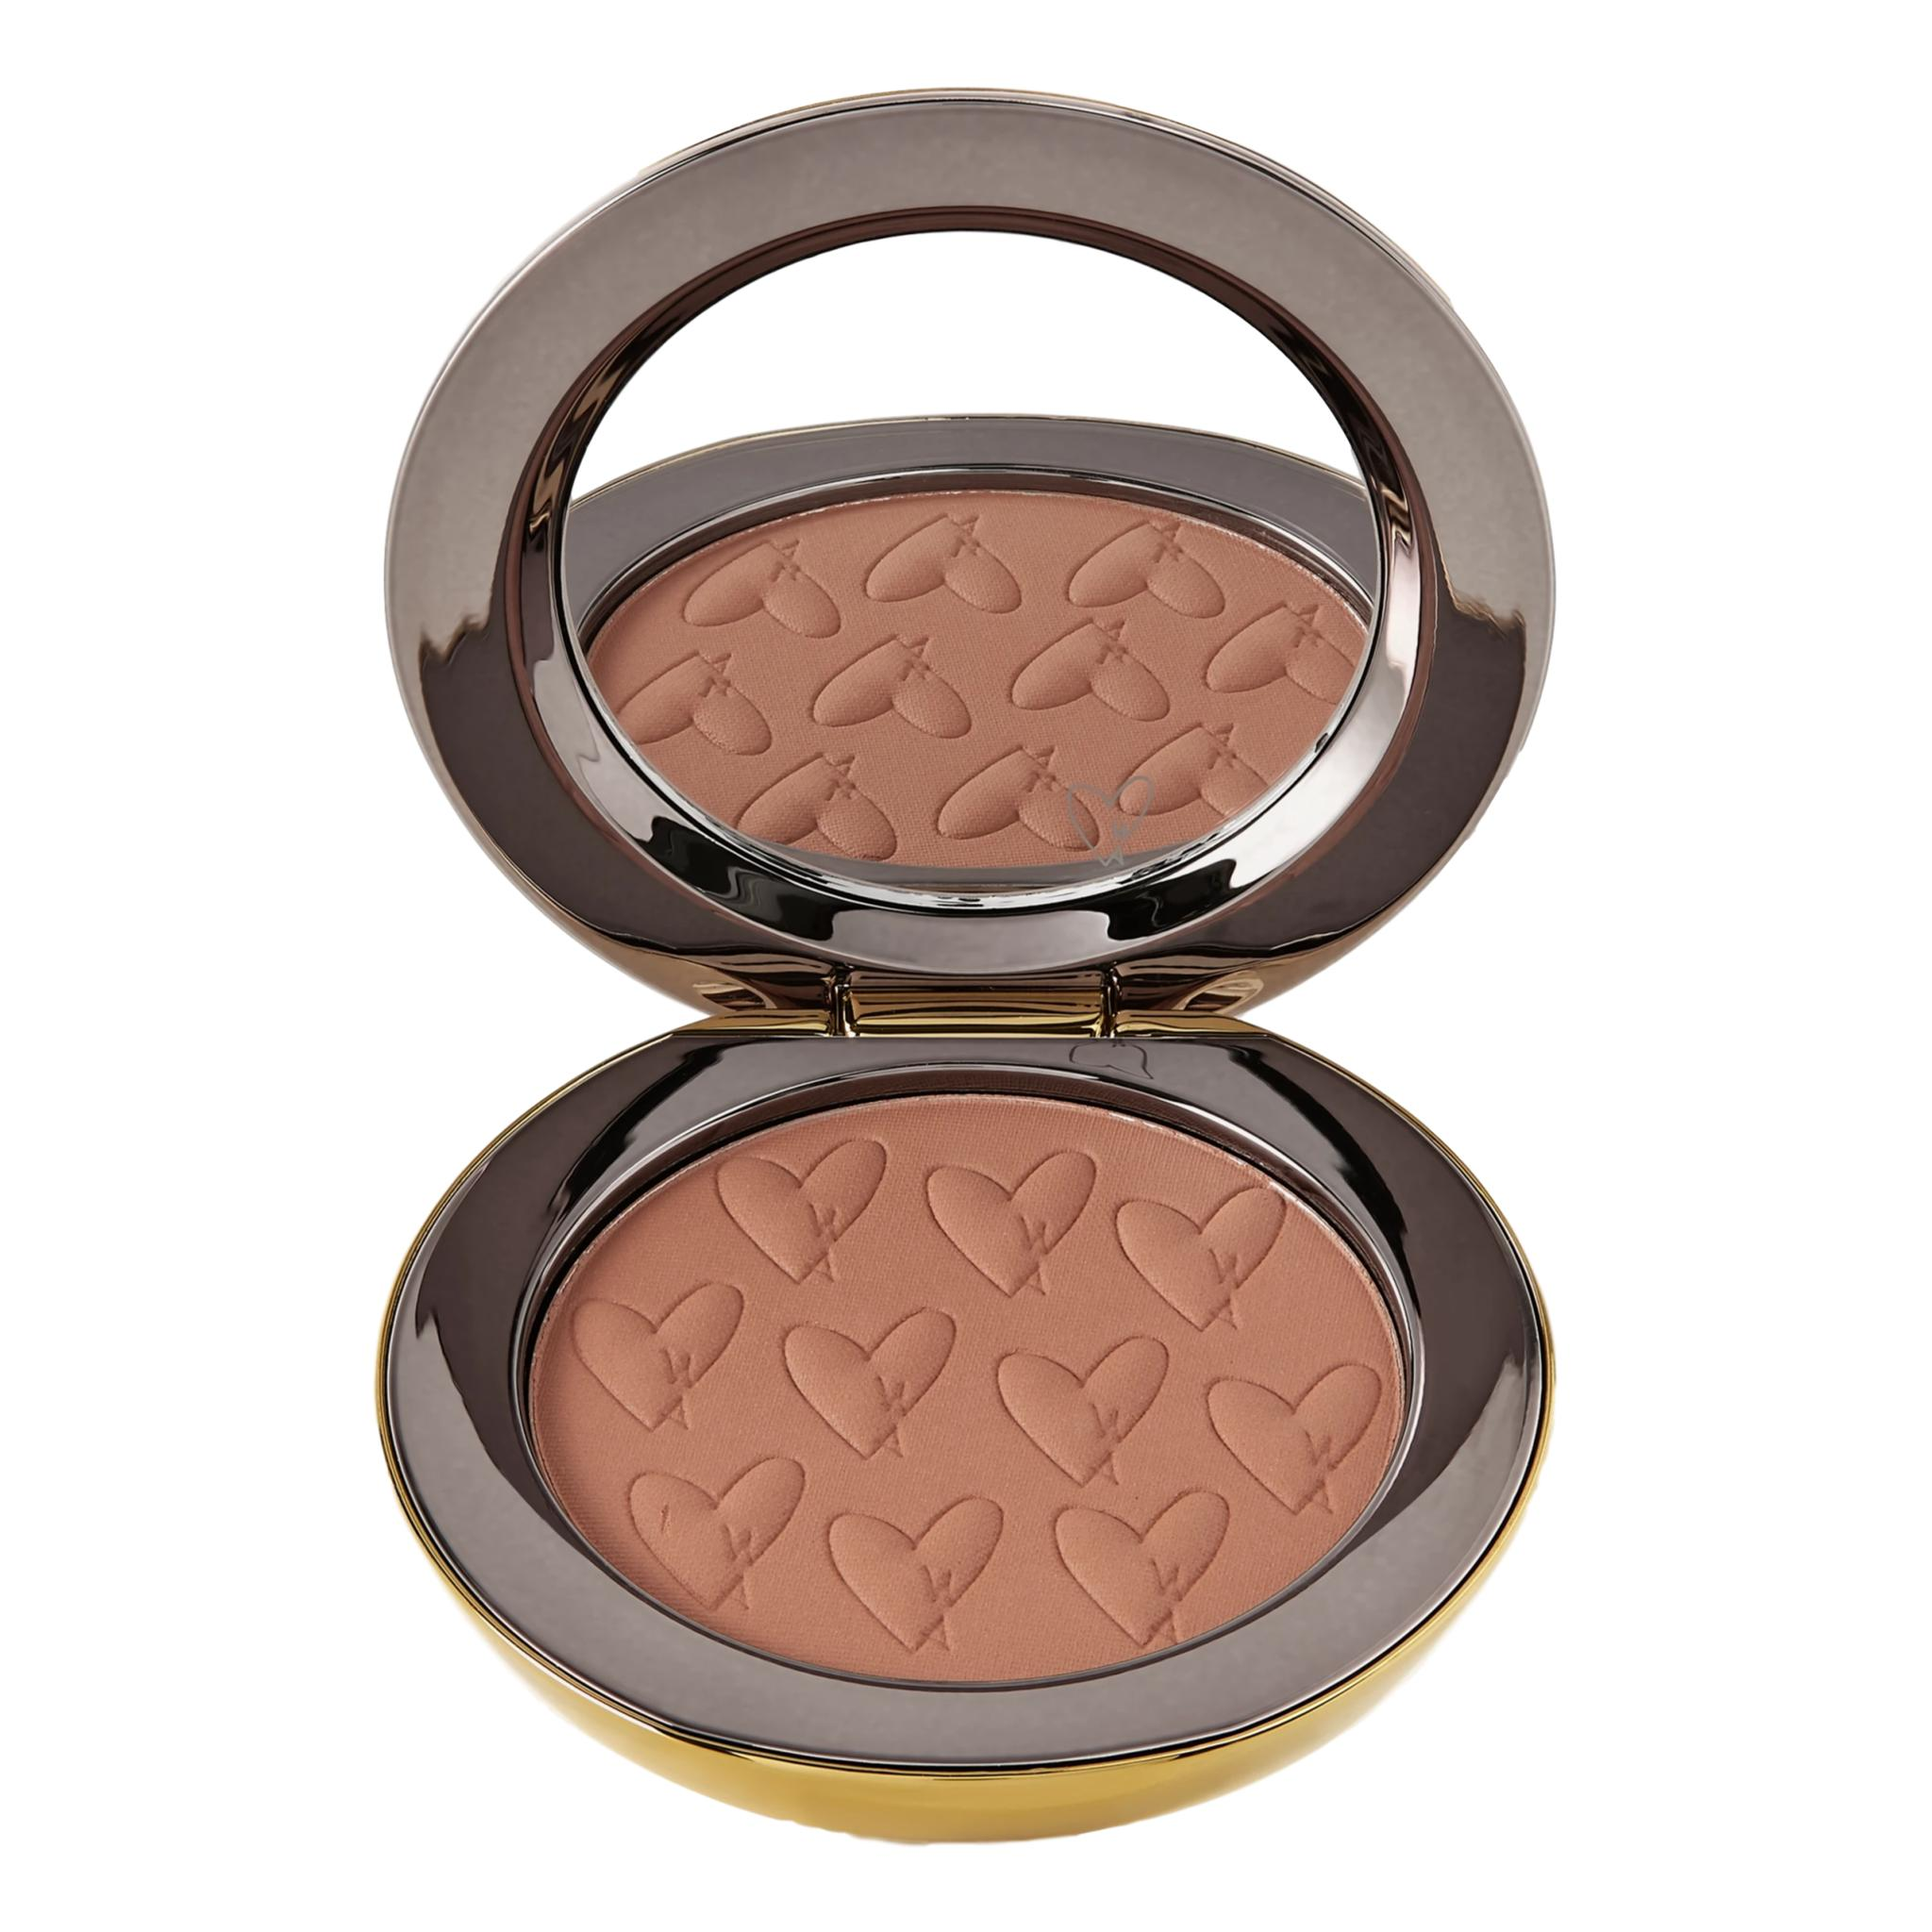 Westman Atelier Beauty Butter Powder Bronzer, bronzer, London Loves Beauty